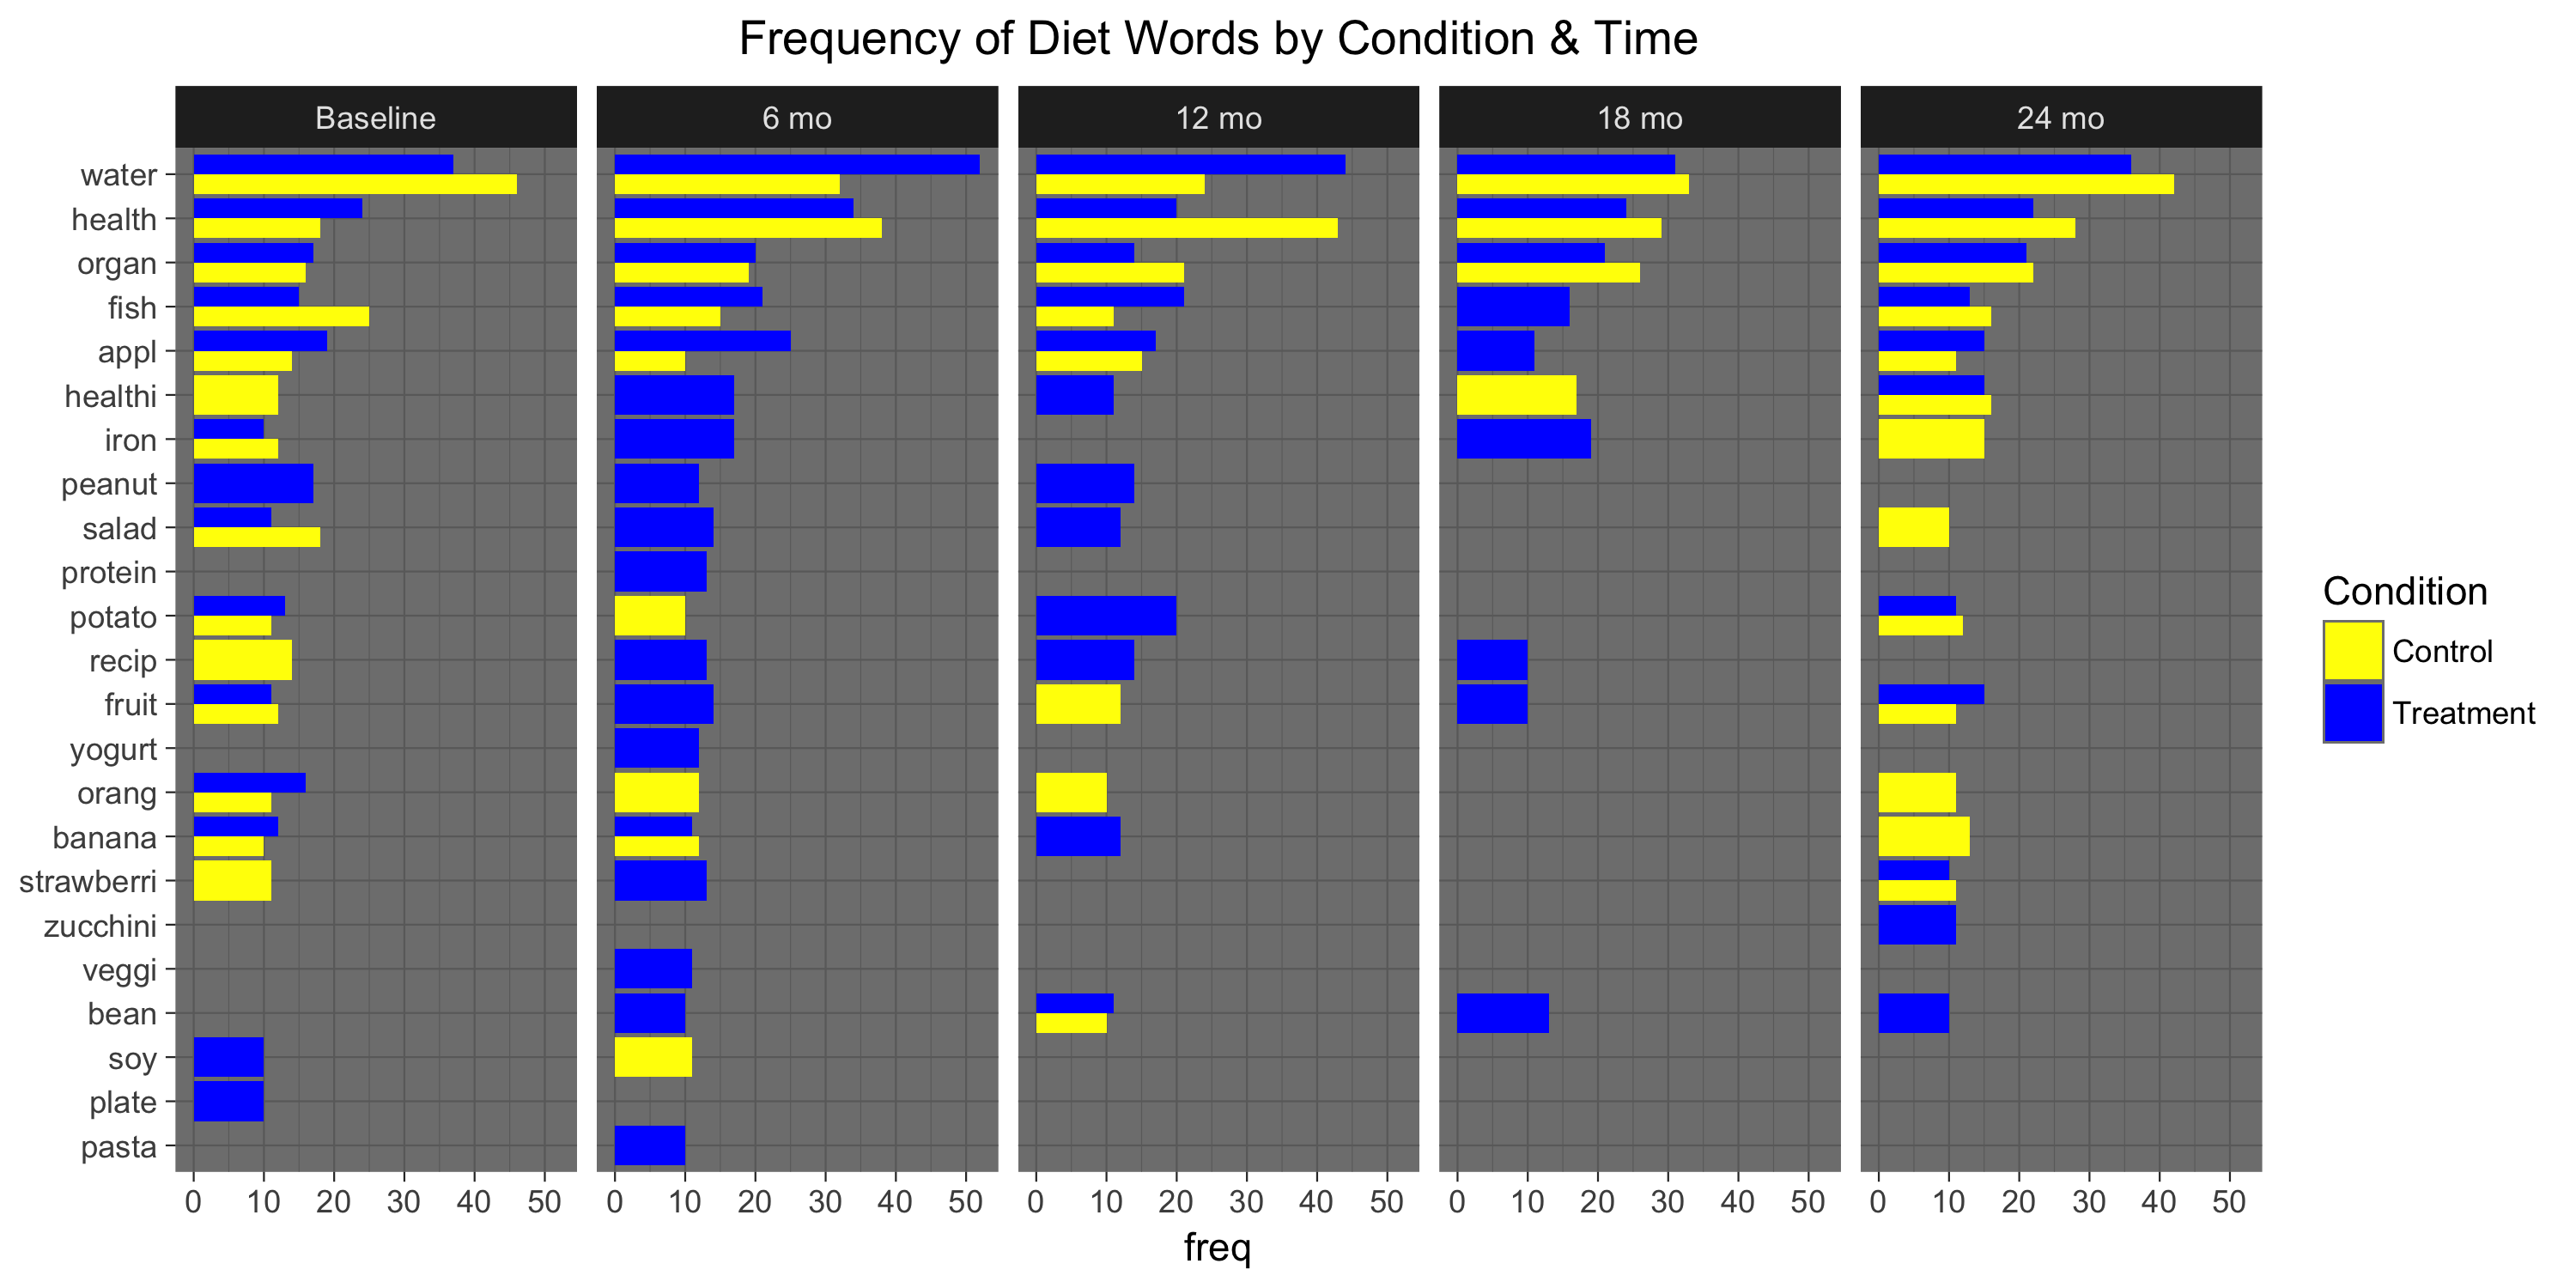 frequency-of-diet-words-by-condition-time